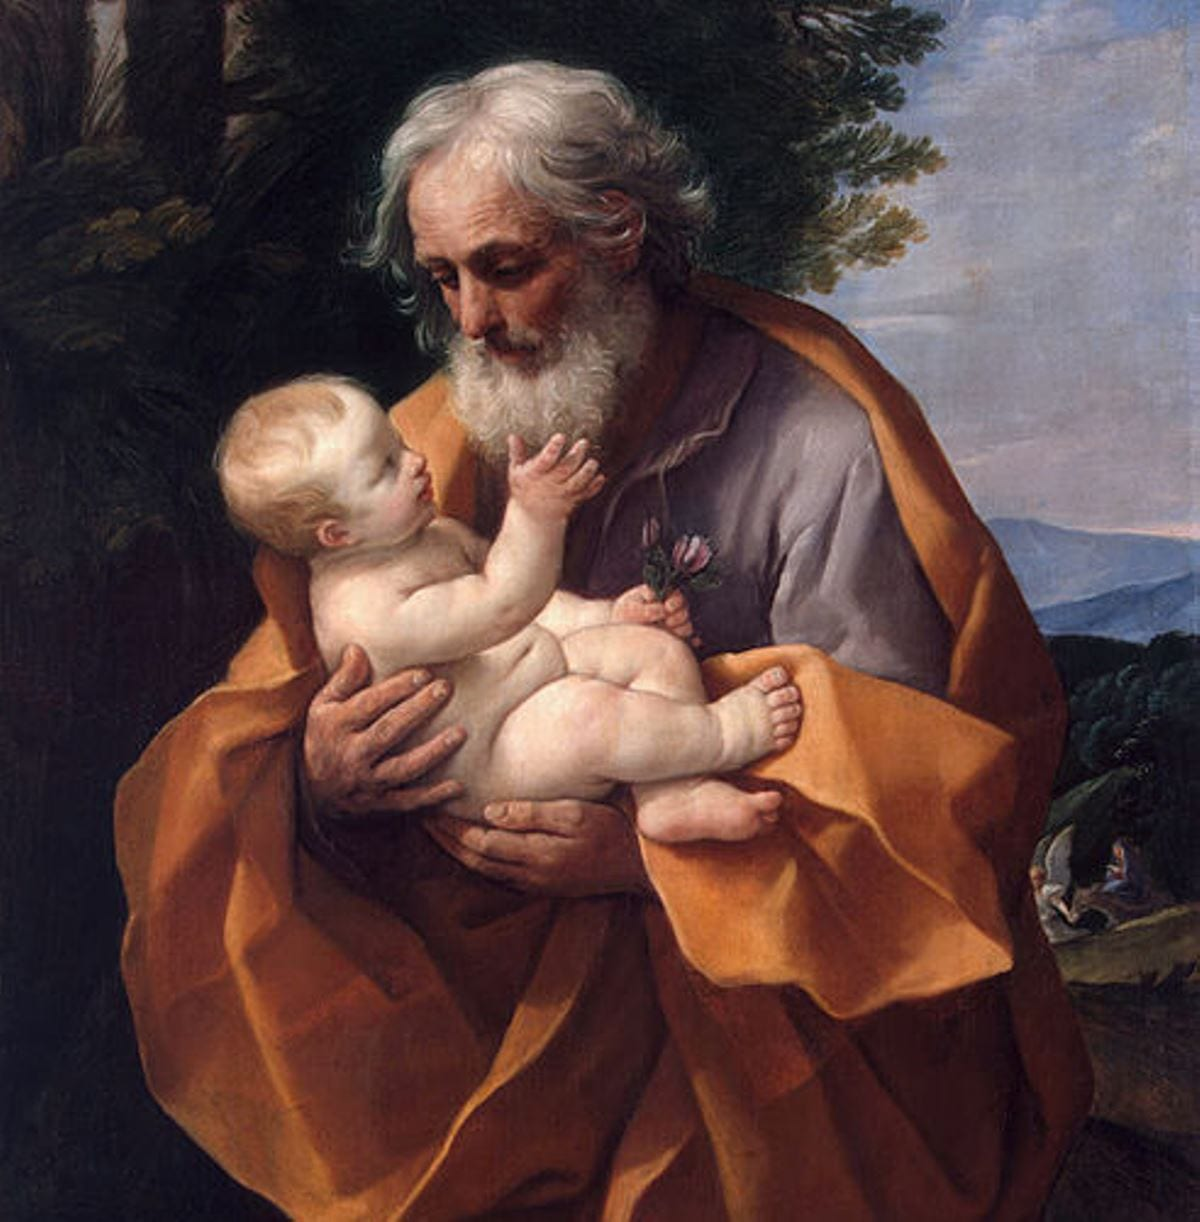 9 Truths You May Not Know About Saint Joseph